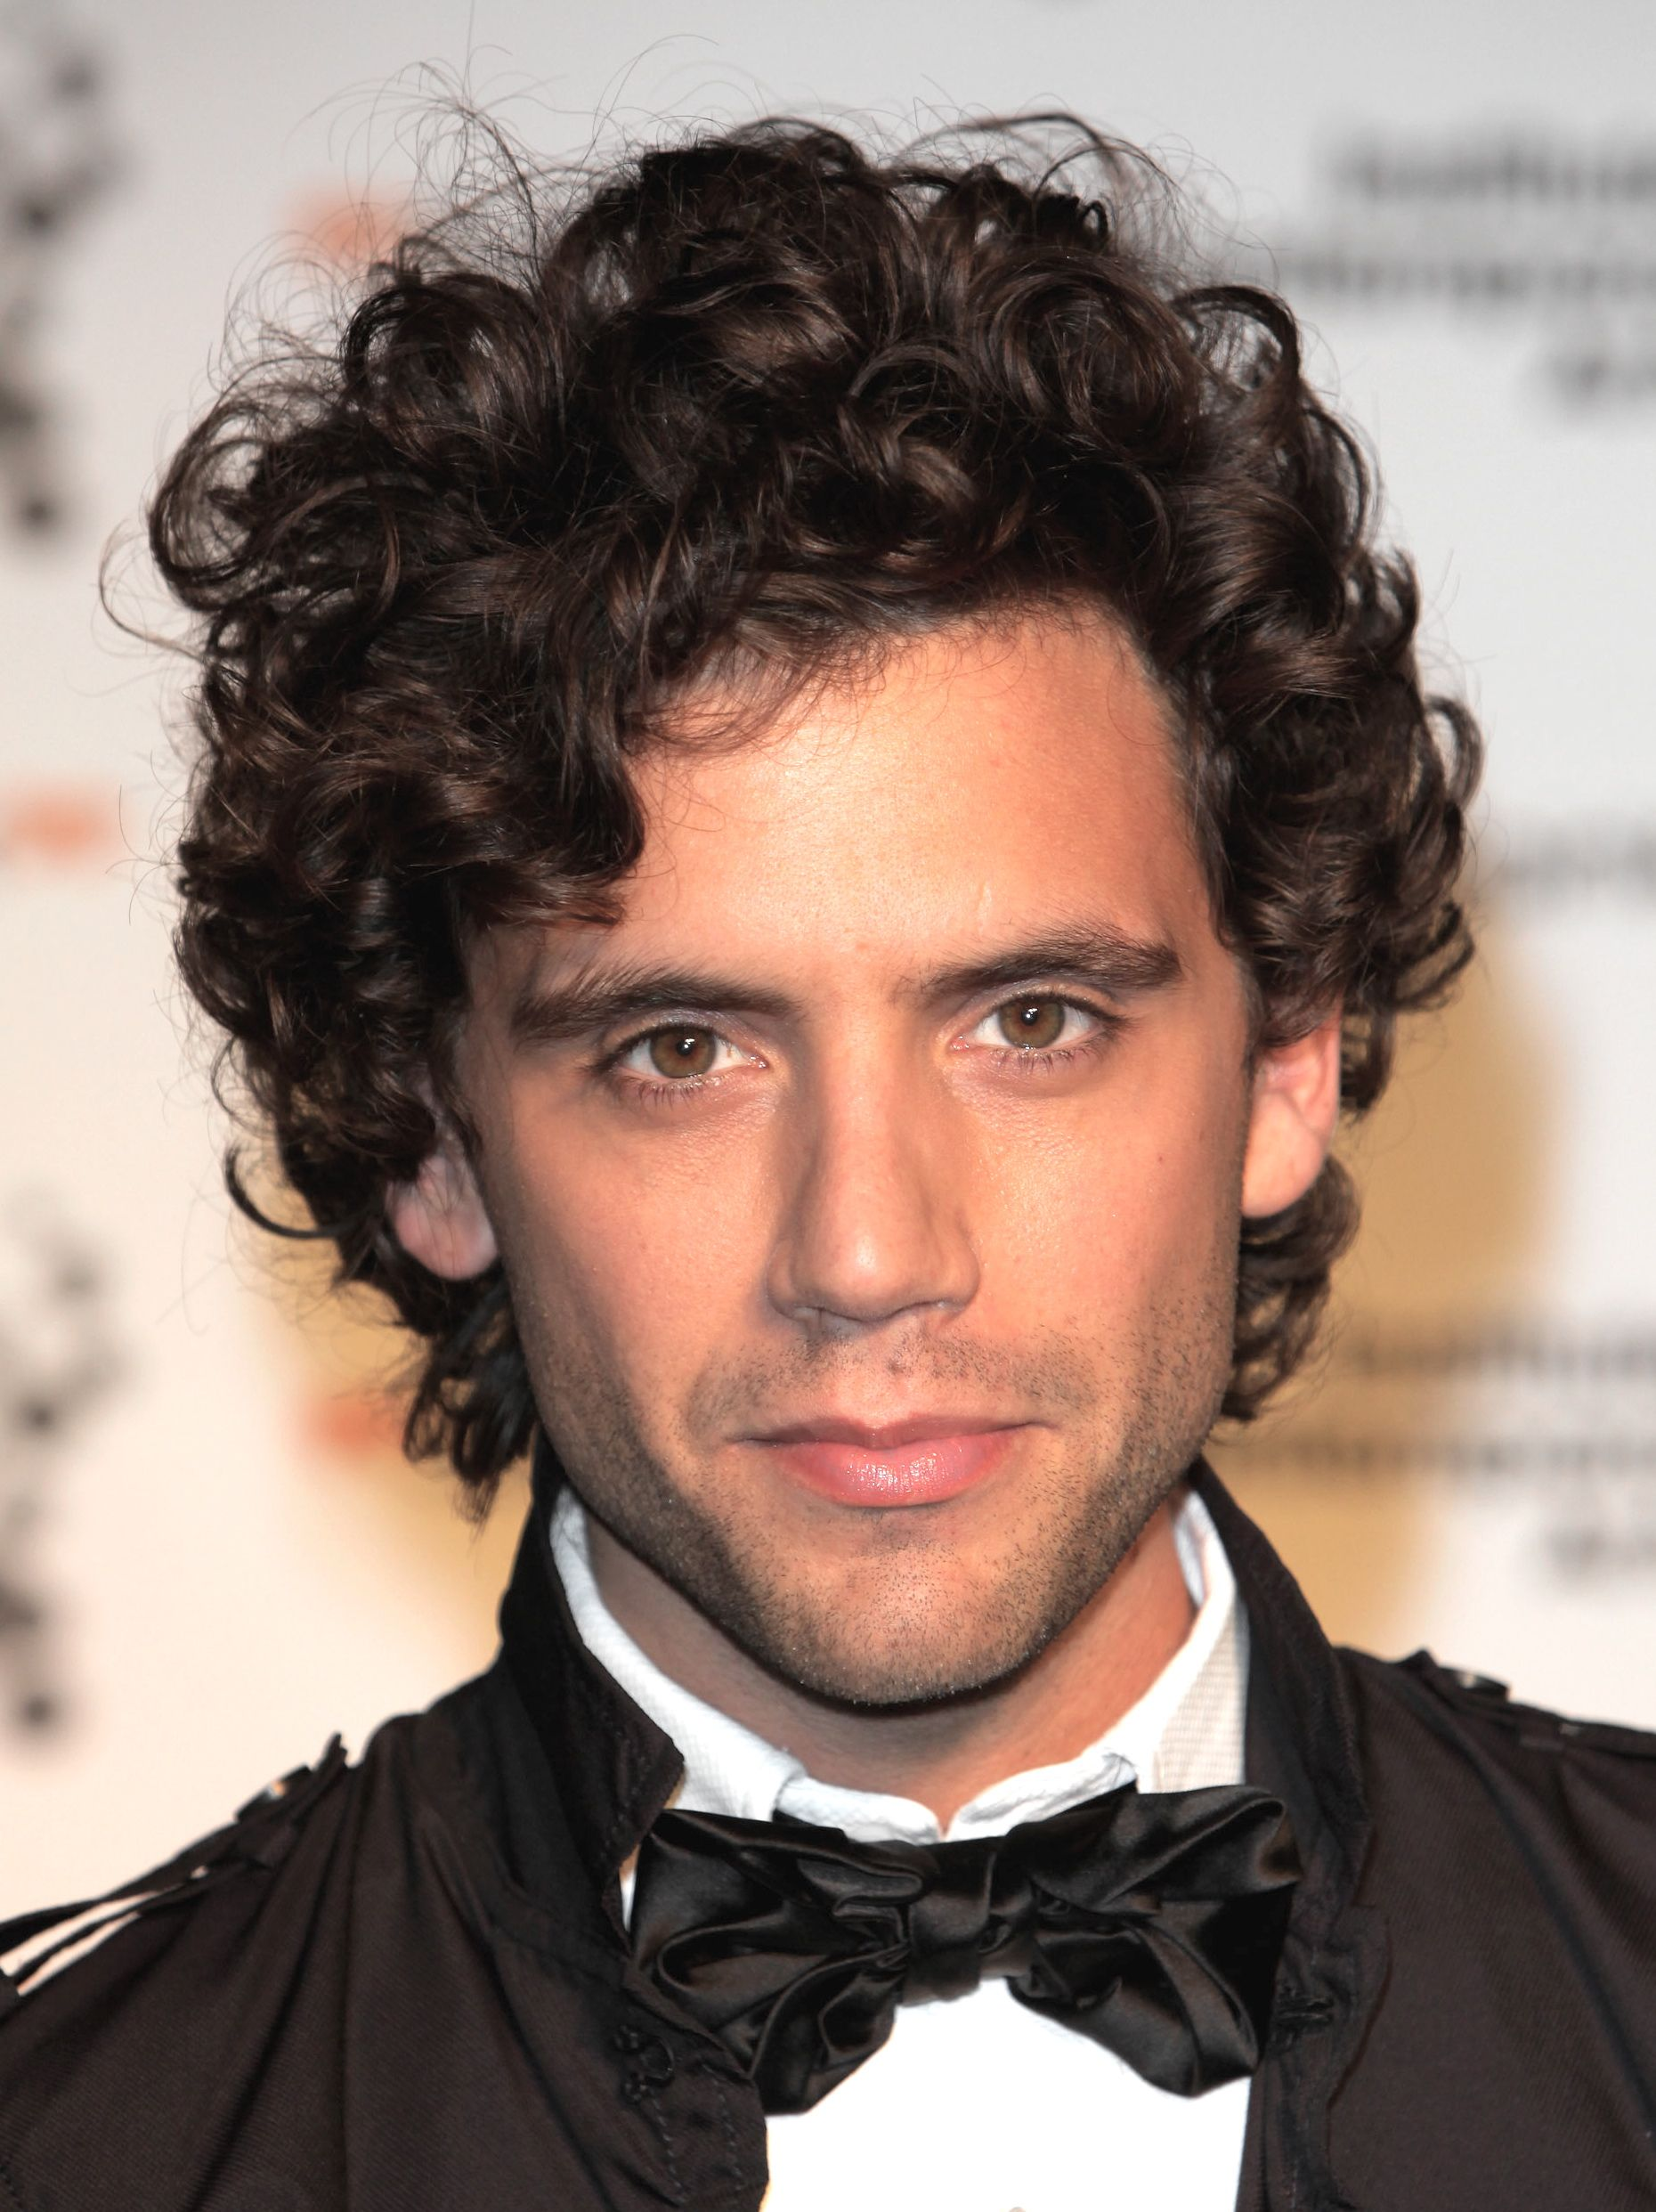 10 Famous Men with Curly Hair Curly hair men, Wavy hair